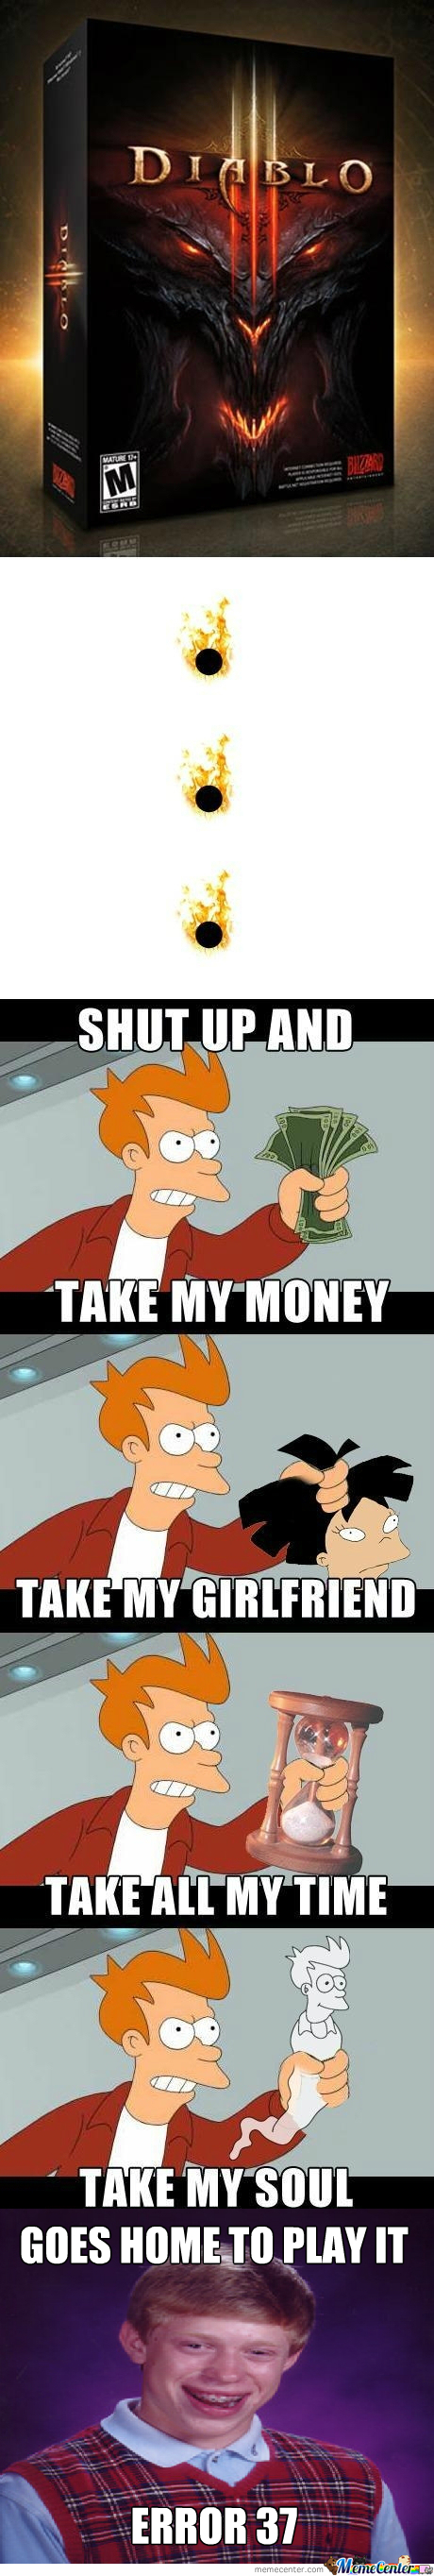 [RMX] Diablo Iii, Shut Up And Take My Money